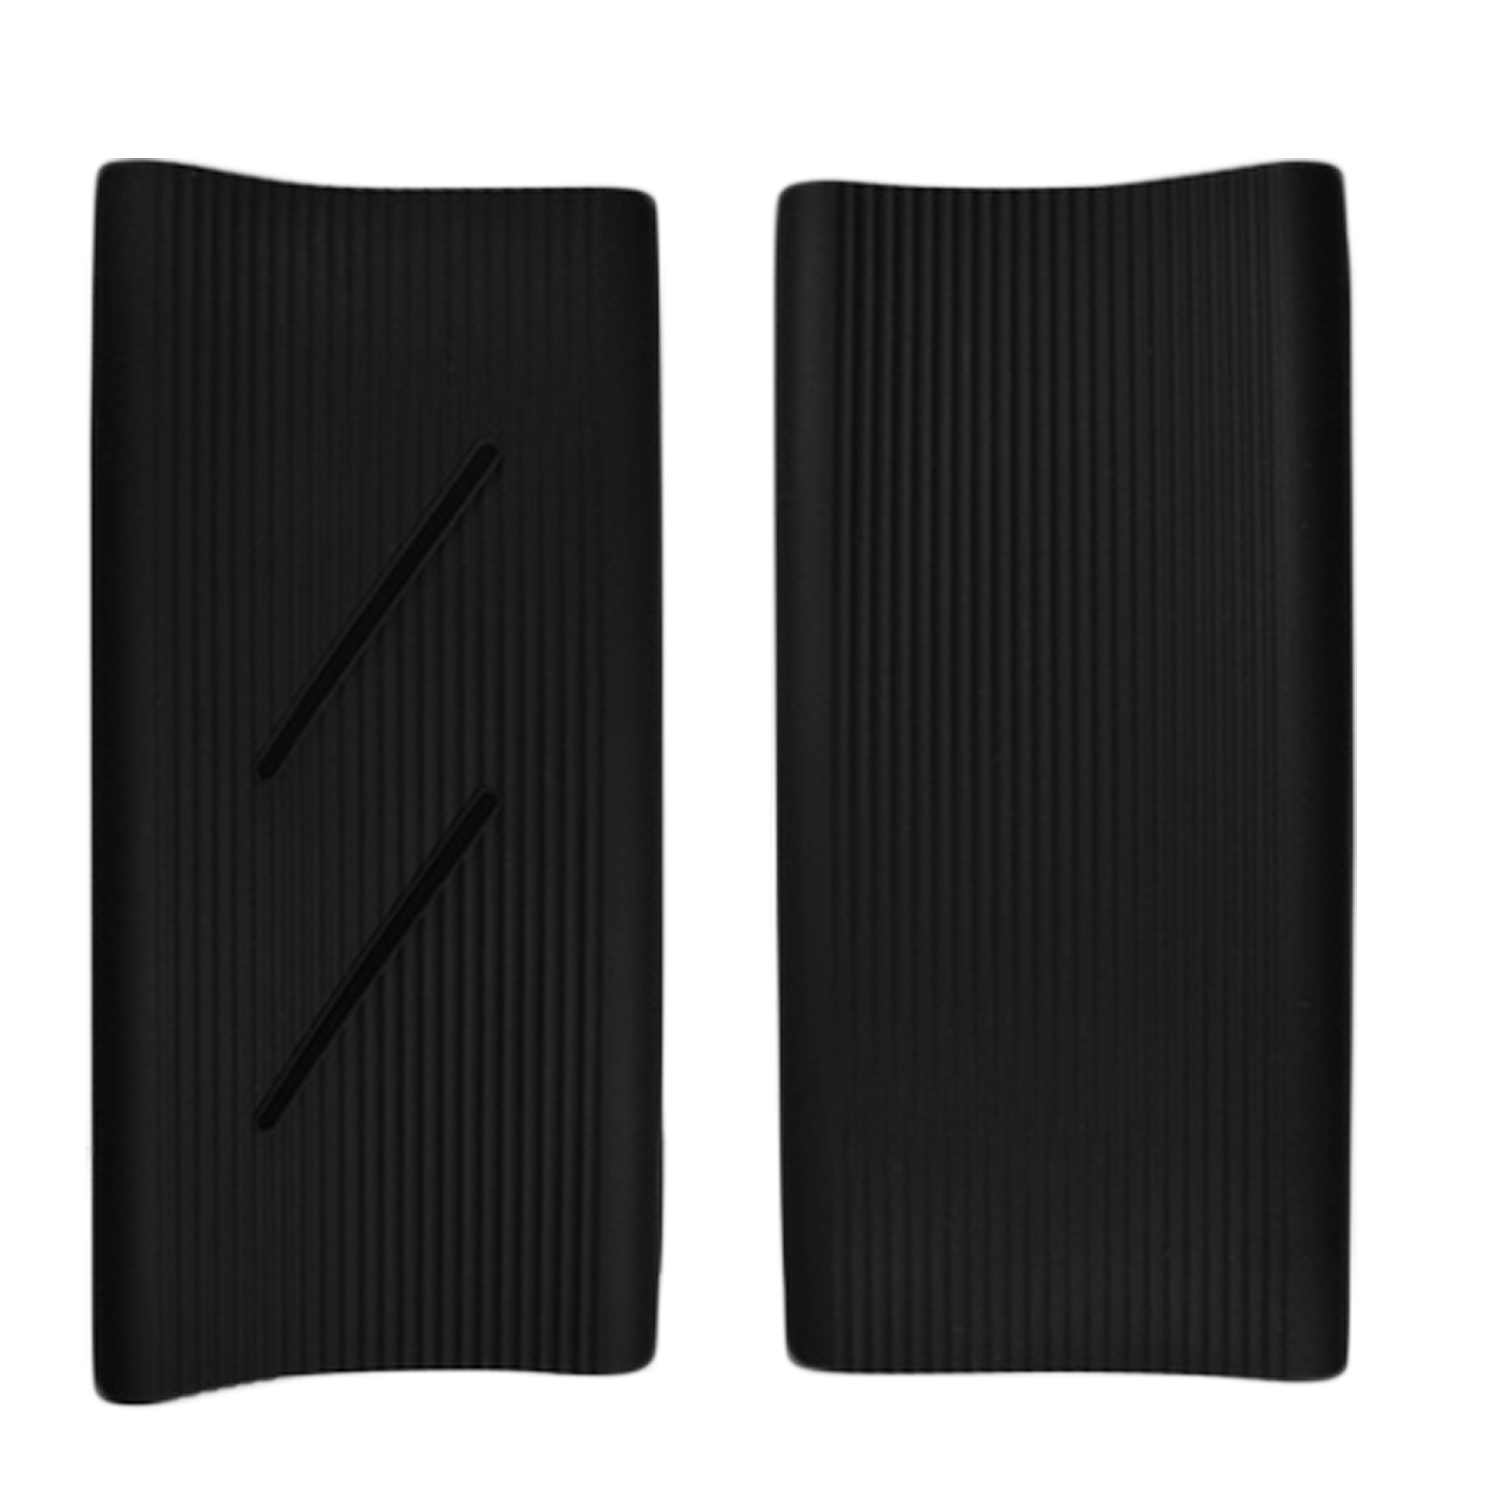 Soft Rubber Silicone Gel Bescherming Case Cover Skin Sleeve Protector Voor Xiaomi Power Bank 2C 20000 Mah Accessoires